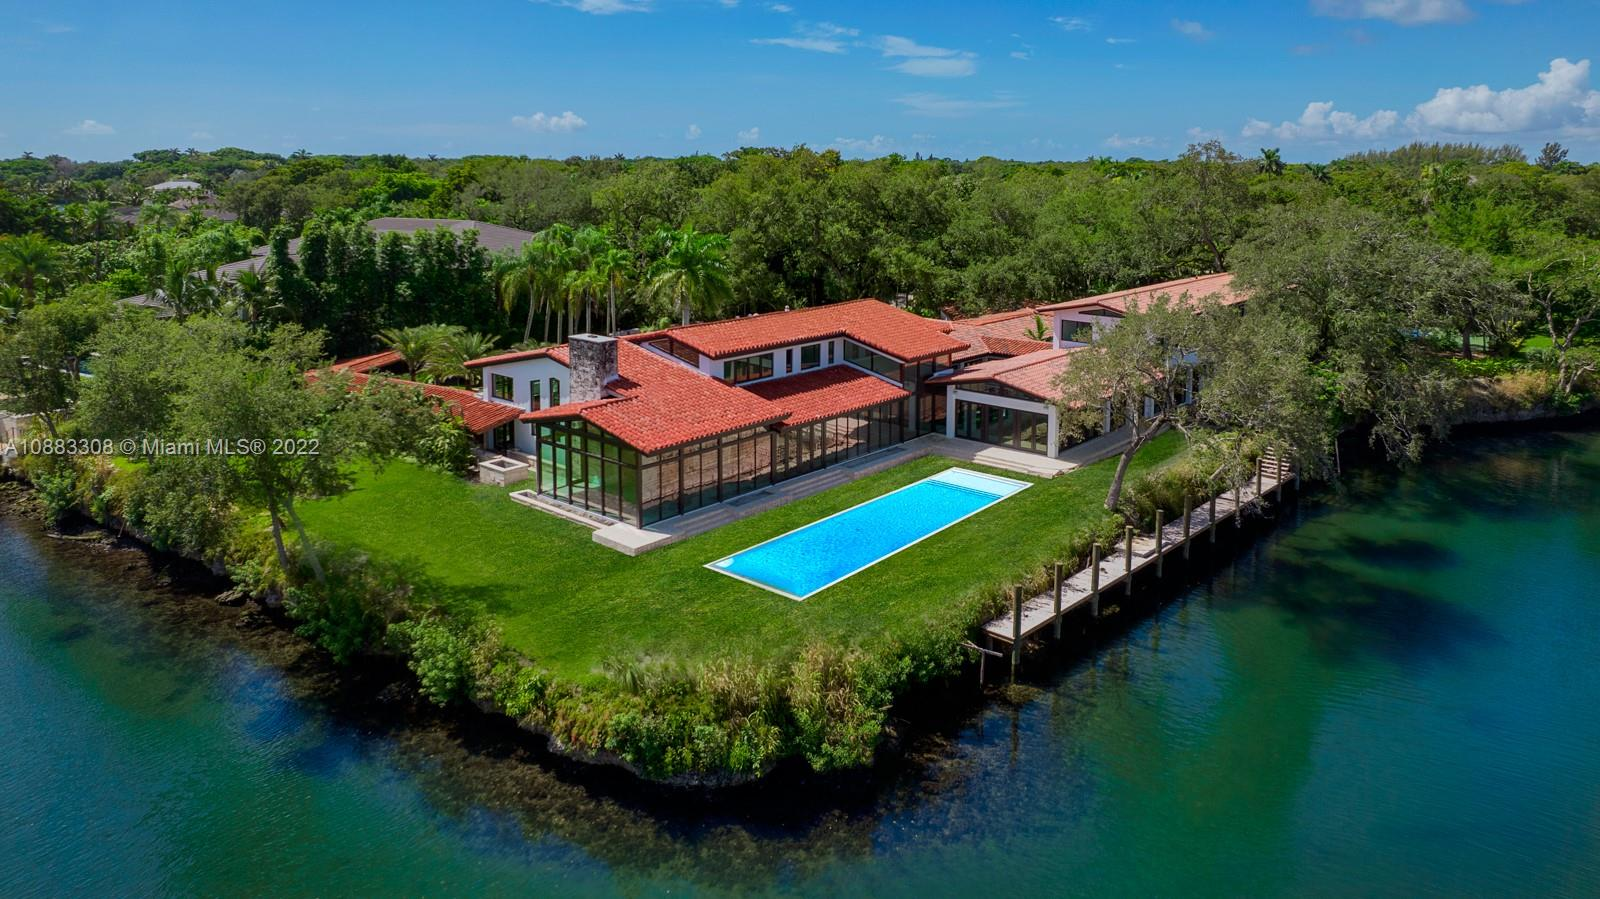 Brand new 2021 compound on the prestigious Granada Boulevard! Situated on the historic Coral Gables waterway on almost 2 acres and boasting 600 FEET of water frontage, this exceptional estate uniquely features a large private dock, 4 car garage, and tennis court. The expansive 15,000SF total area hosts 7 beds + library, 9 baths completed with oak and marble flooring throughout. Step into the grand primary suite with enchanting views of the water and through custom designed glass windows. The chef's kitchen is an epicurean masterpiece designed by Italkraft with top of the line appliances. Natural sunlight pours in throughout the grand family room. The split floorplan is perfect for how you wish to live.